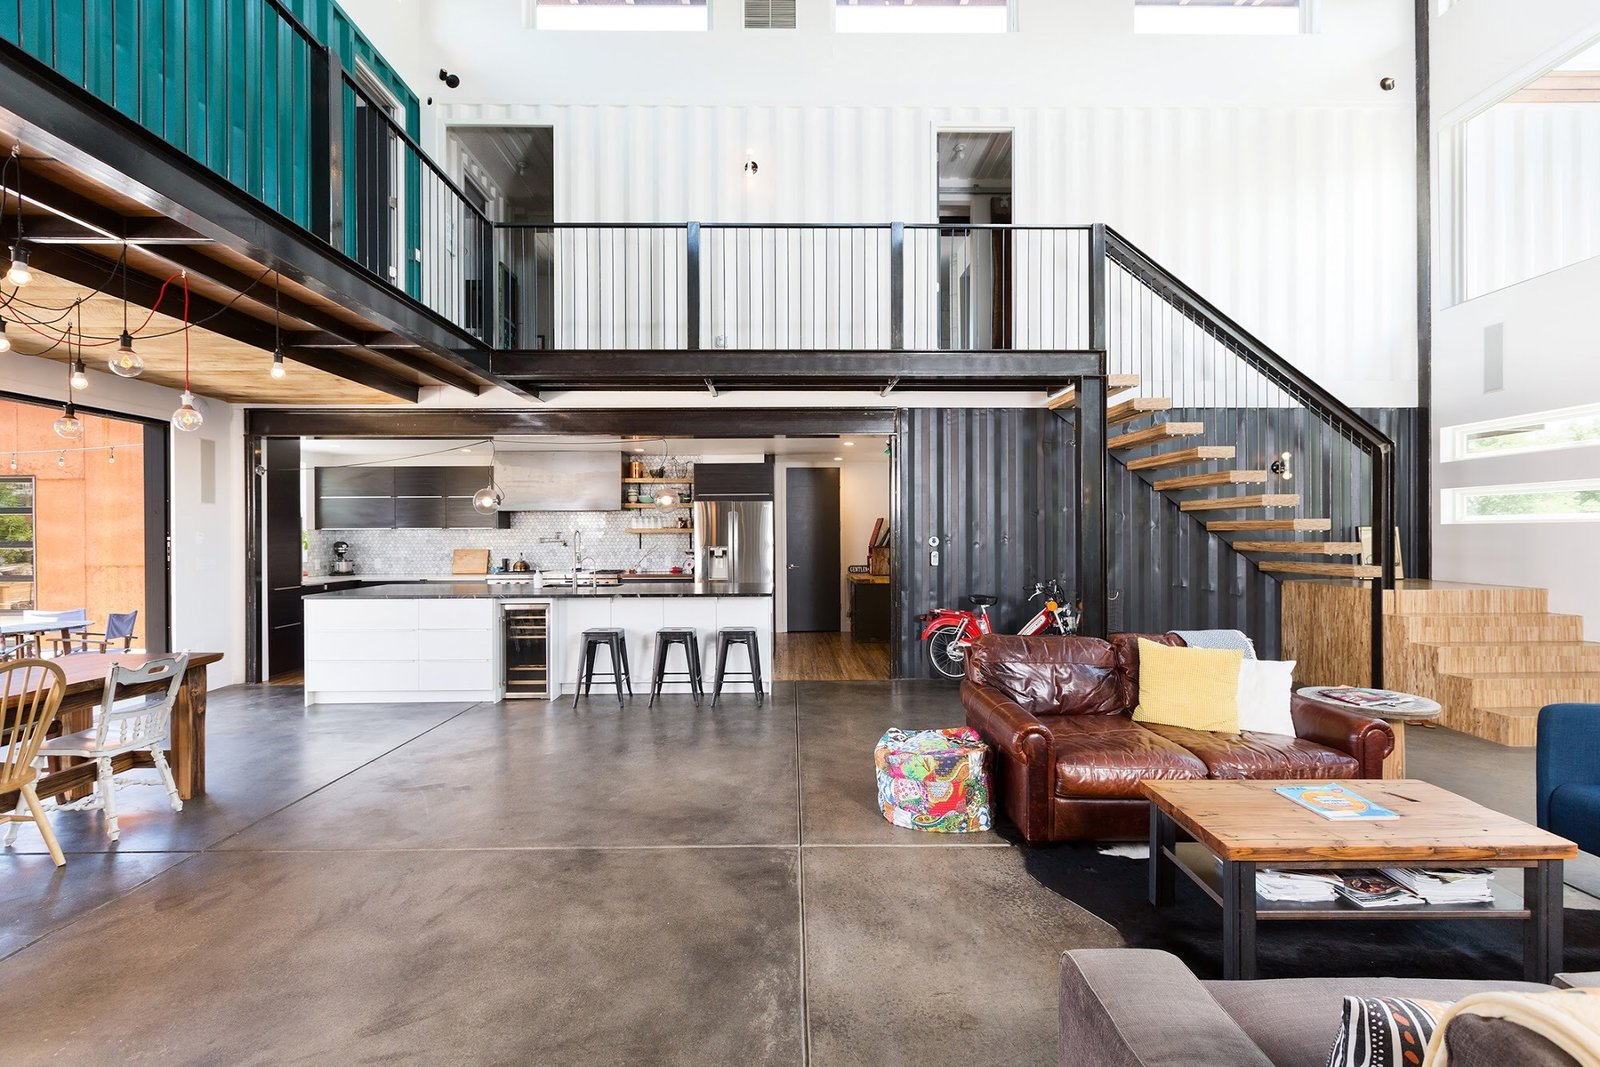 Living Room, Chair, Bench, Ceiling Lighting, End Tables, and Sofa Chris Boylen Photography  The Container house